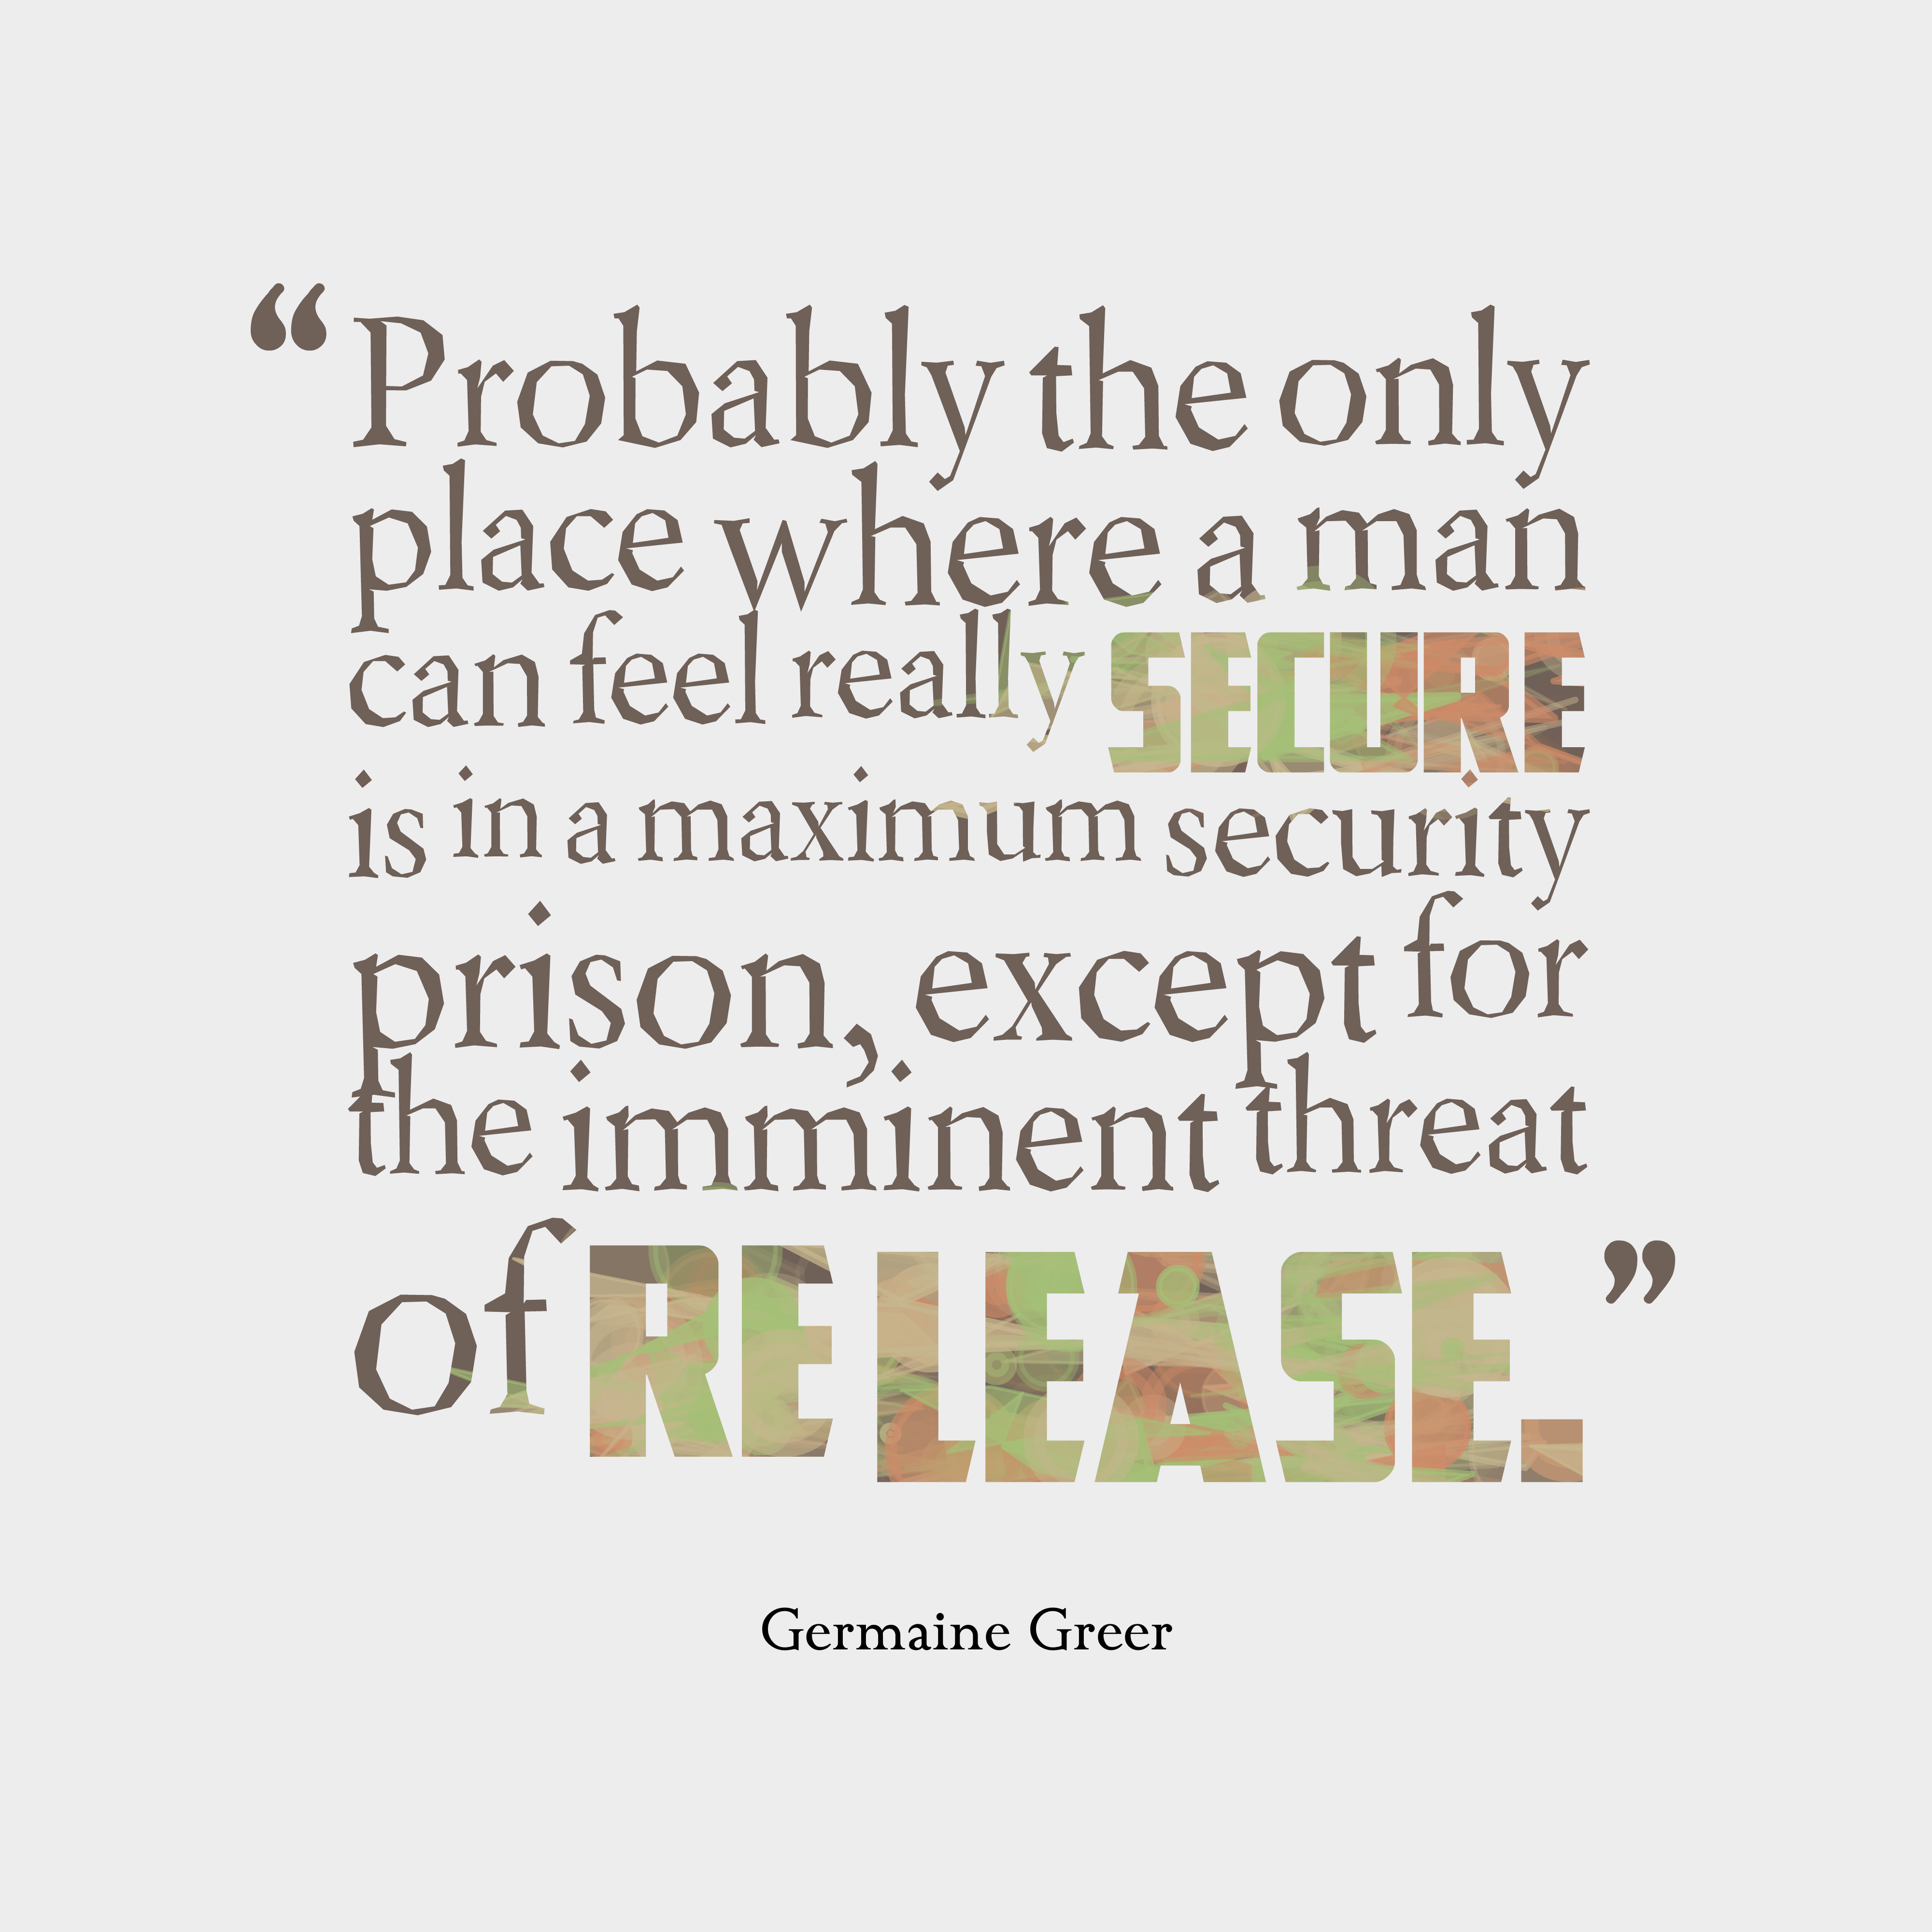 Quotes image of Probably the only place where a man can feel really secure is in a maximum security prison, except for the imminent threat of release.